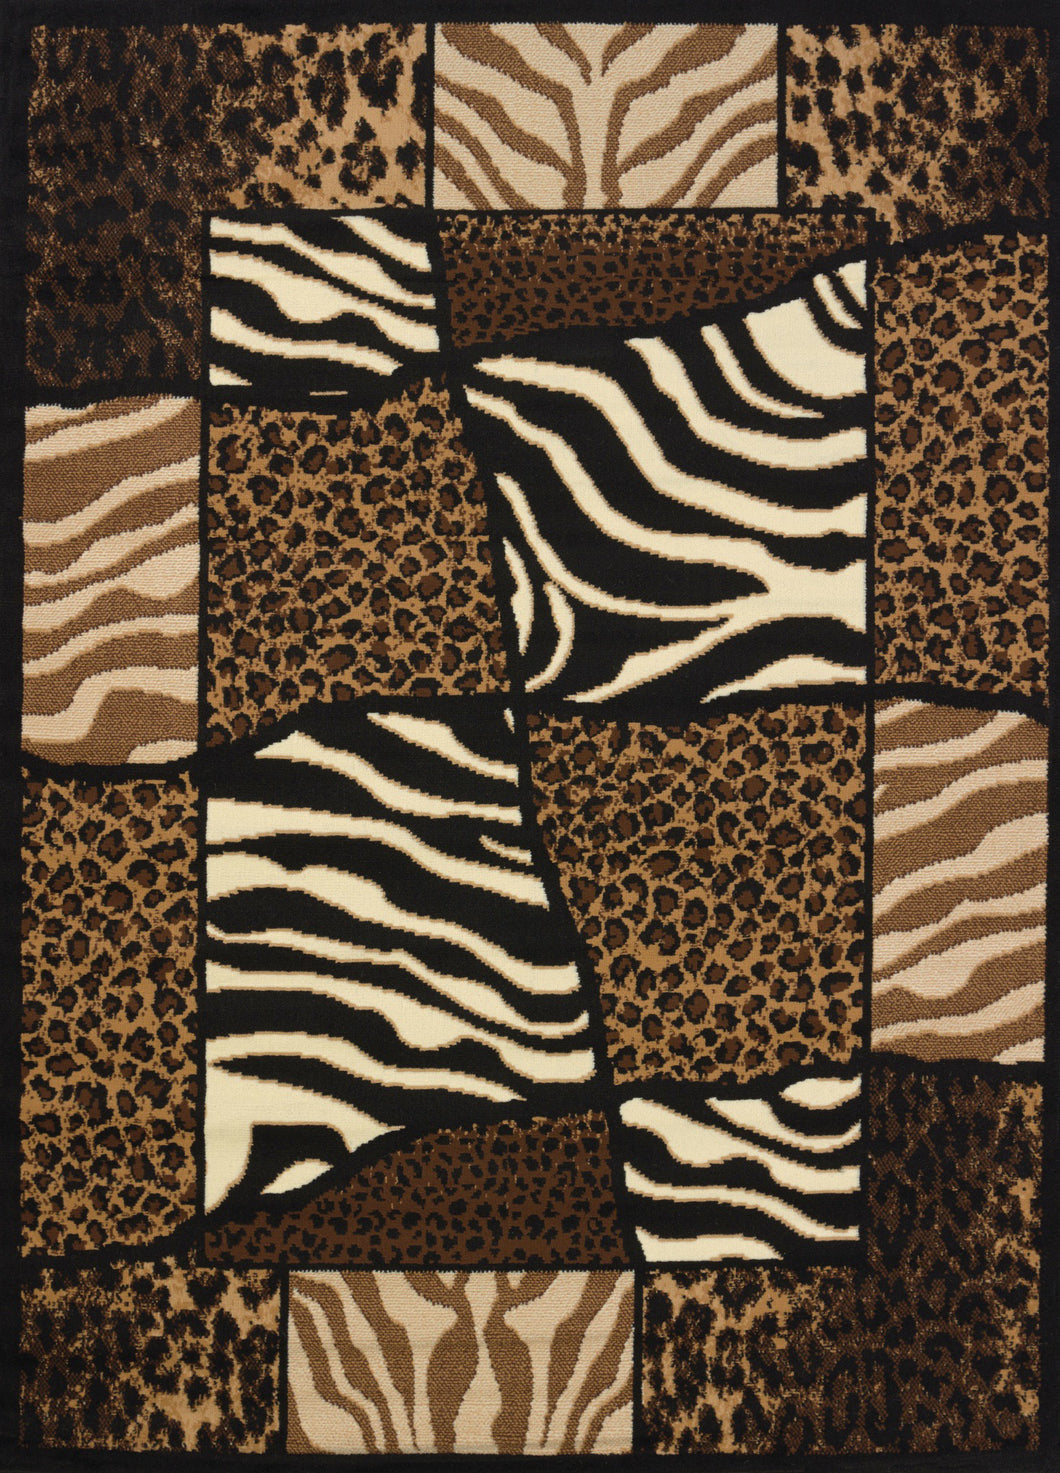 United Weavers  Legends  African Montage  910 04450  Multi  Area Rug